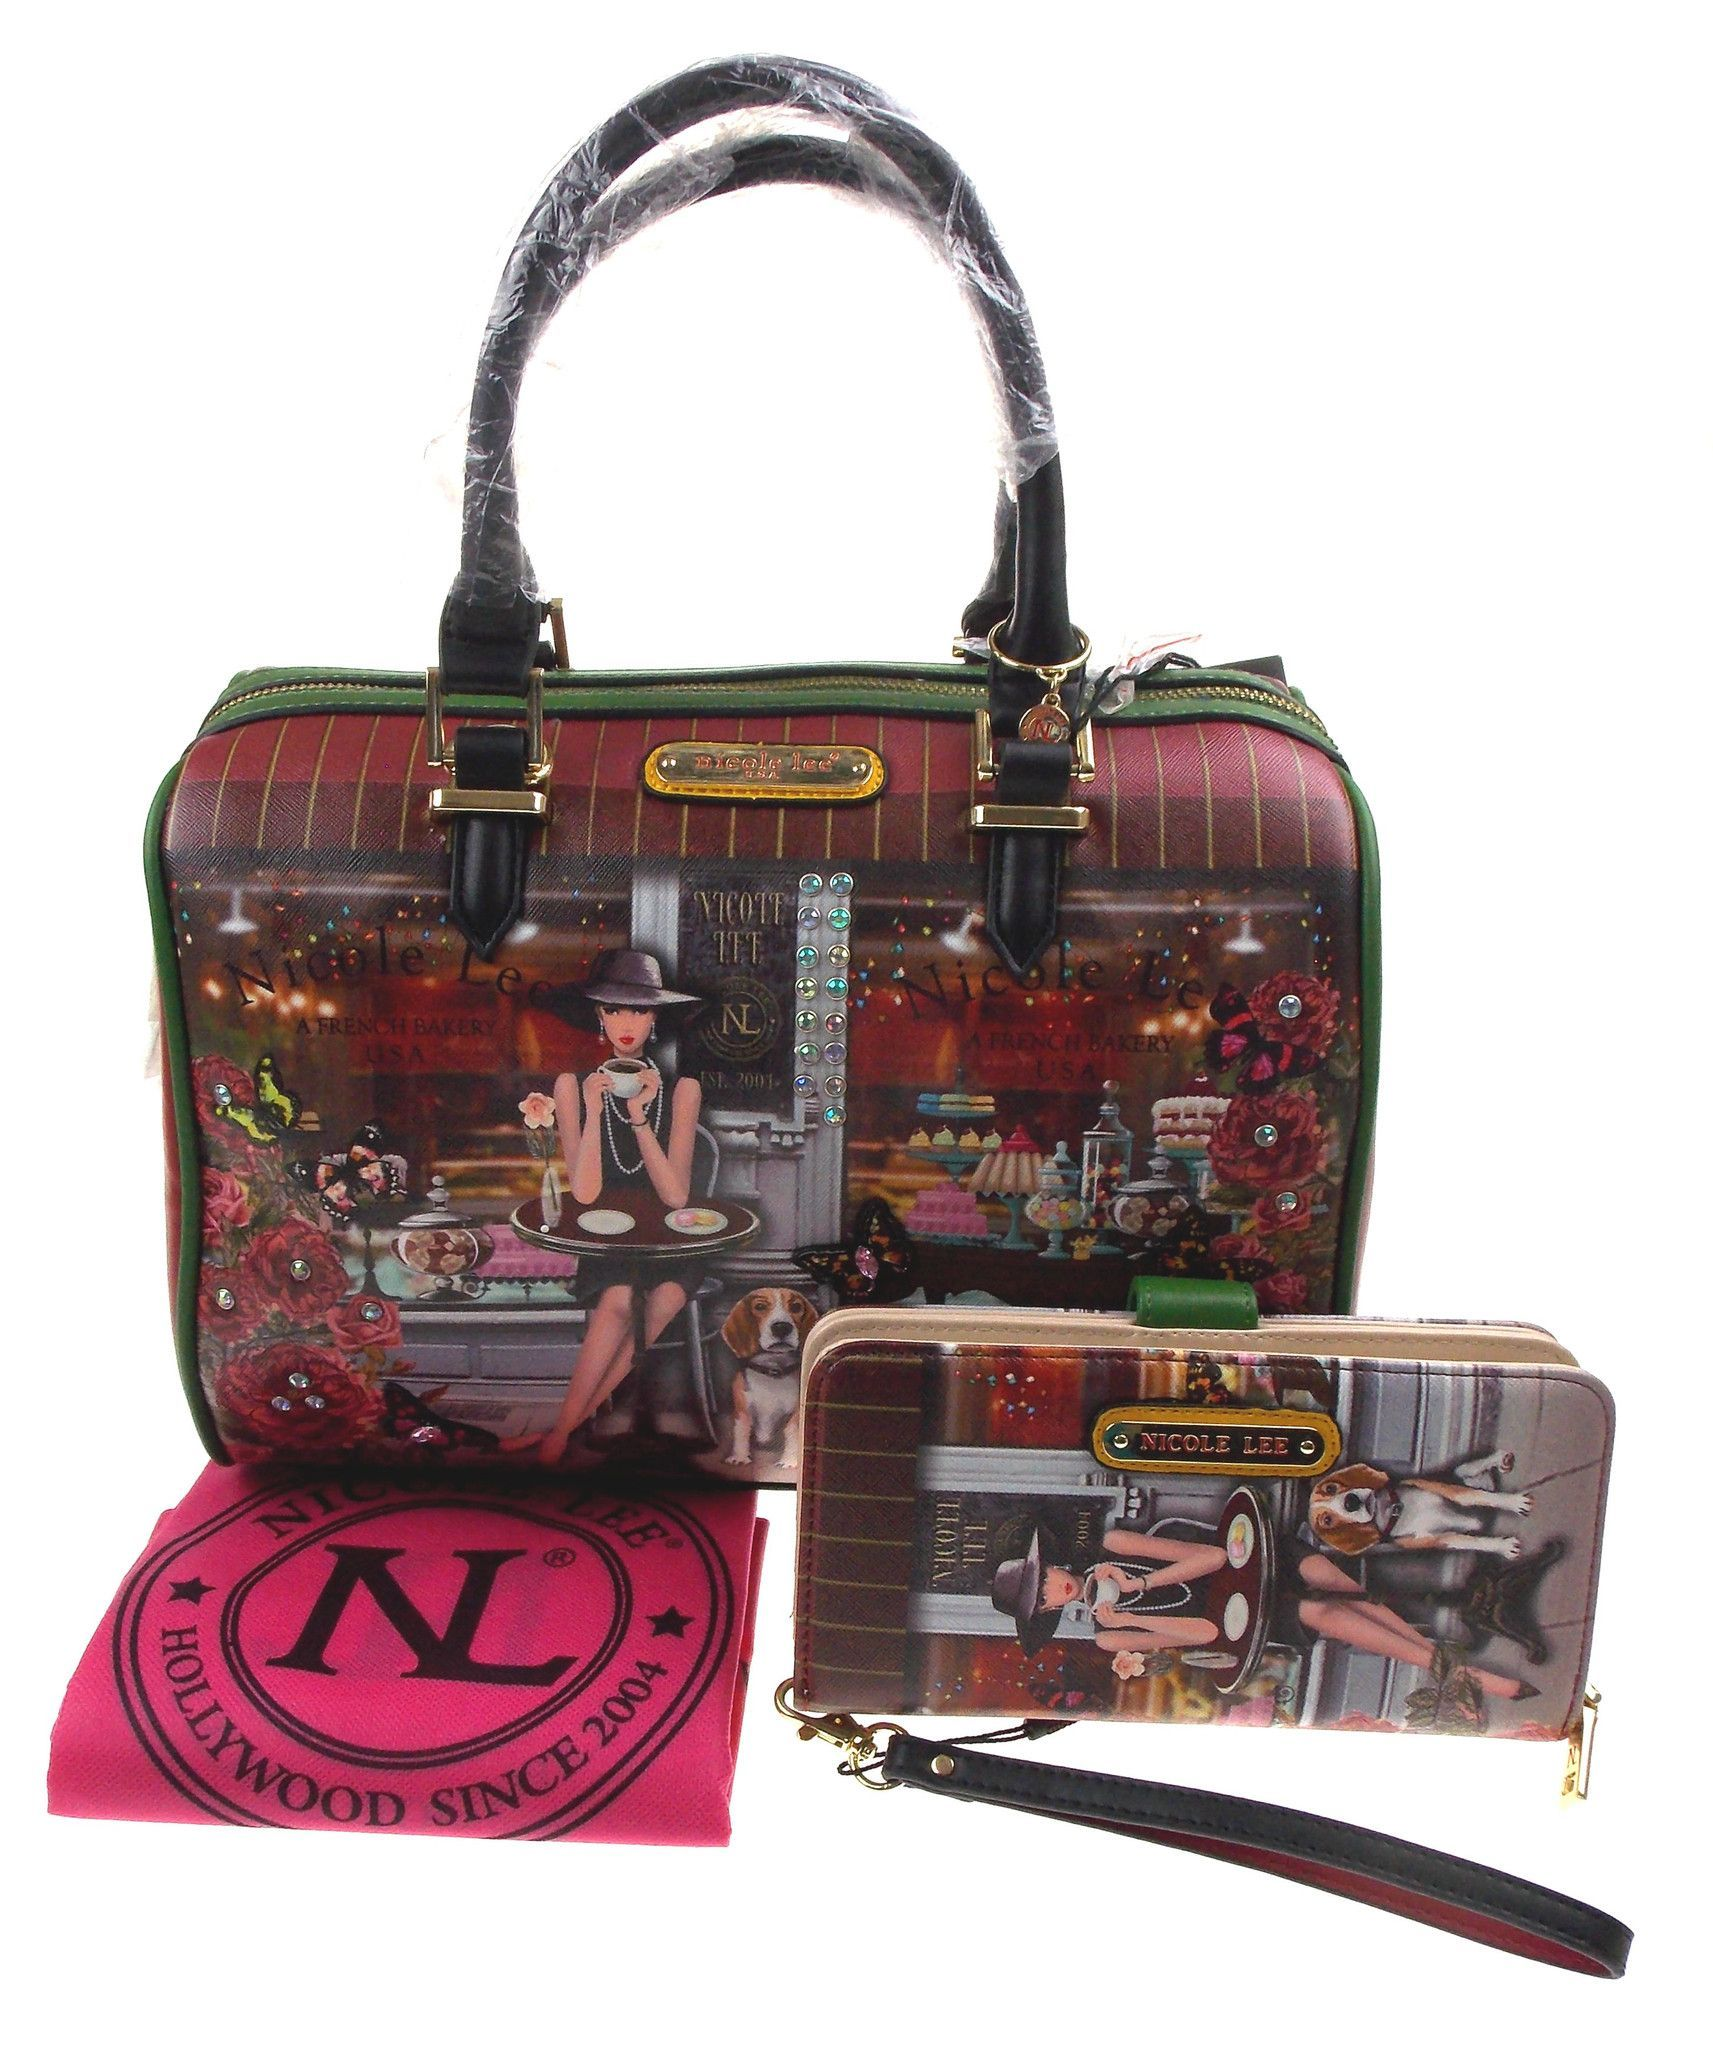 f2f698c87bfb Nicole Lee Lauren Goes Coffee Break Print Boston Handbag   Wallet LAU11664  Purse